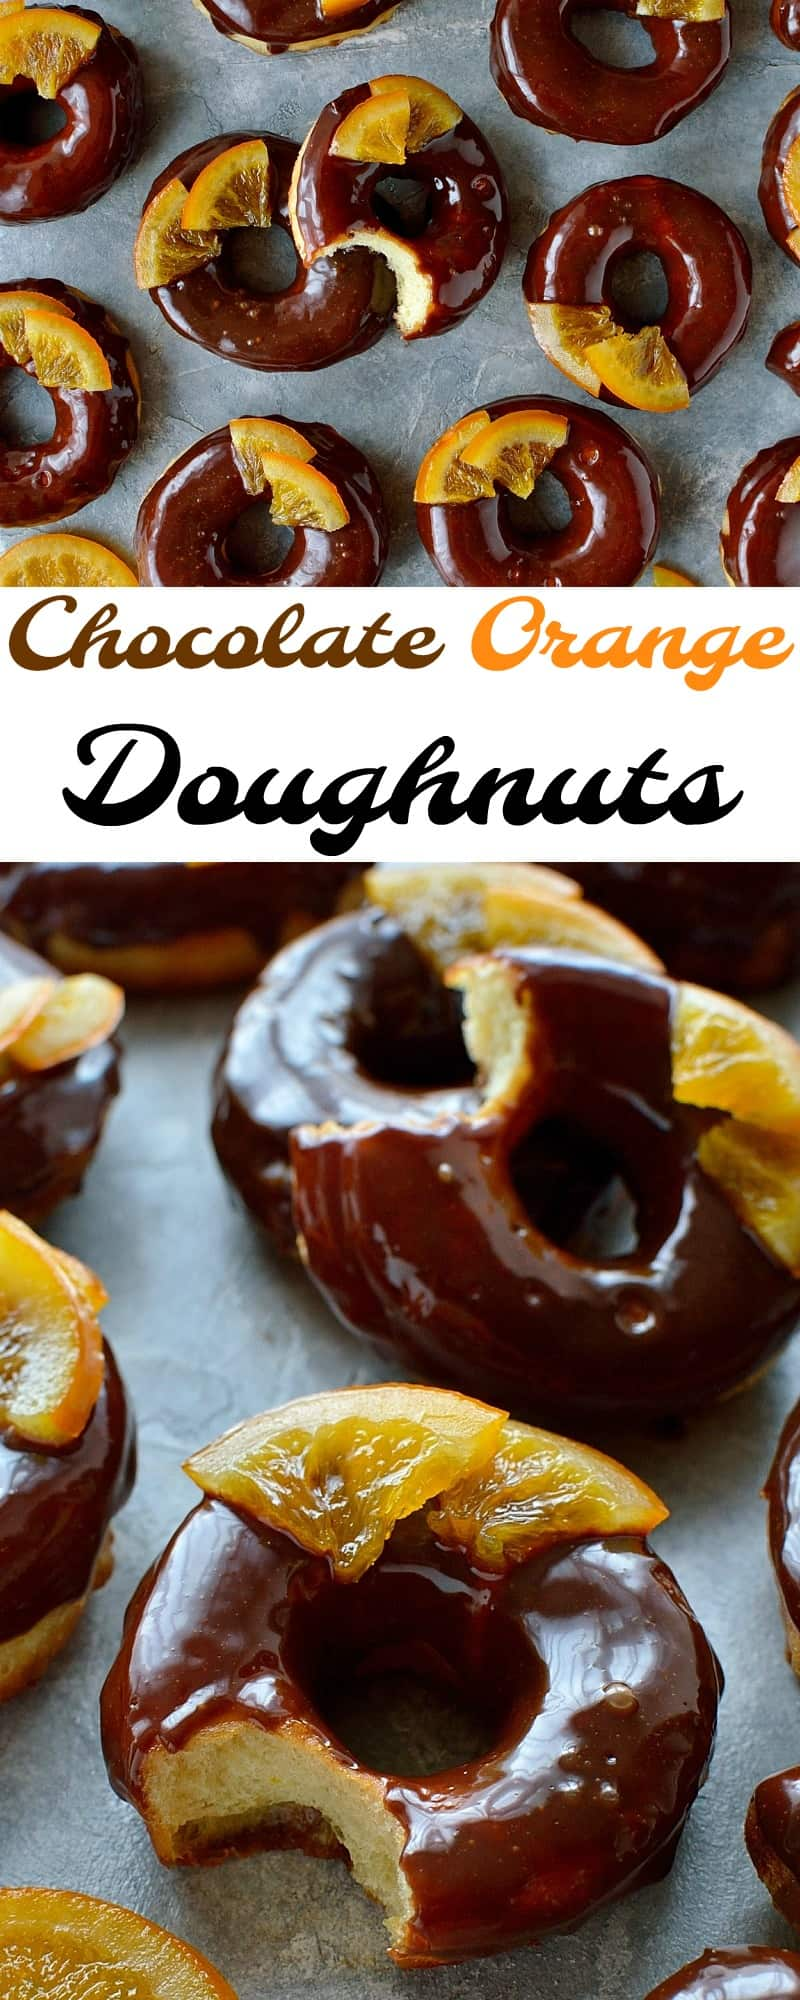 Chocolate orange doughnuts – soft, light-as-air orange infused yeast doughnuts with chocolate orange glaze and candied oranges – pure bliss!